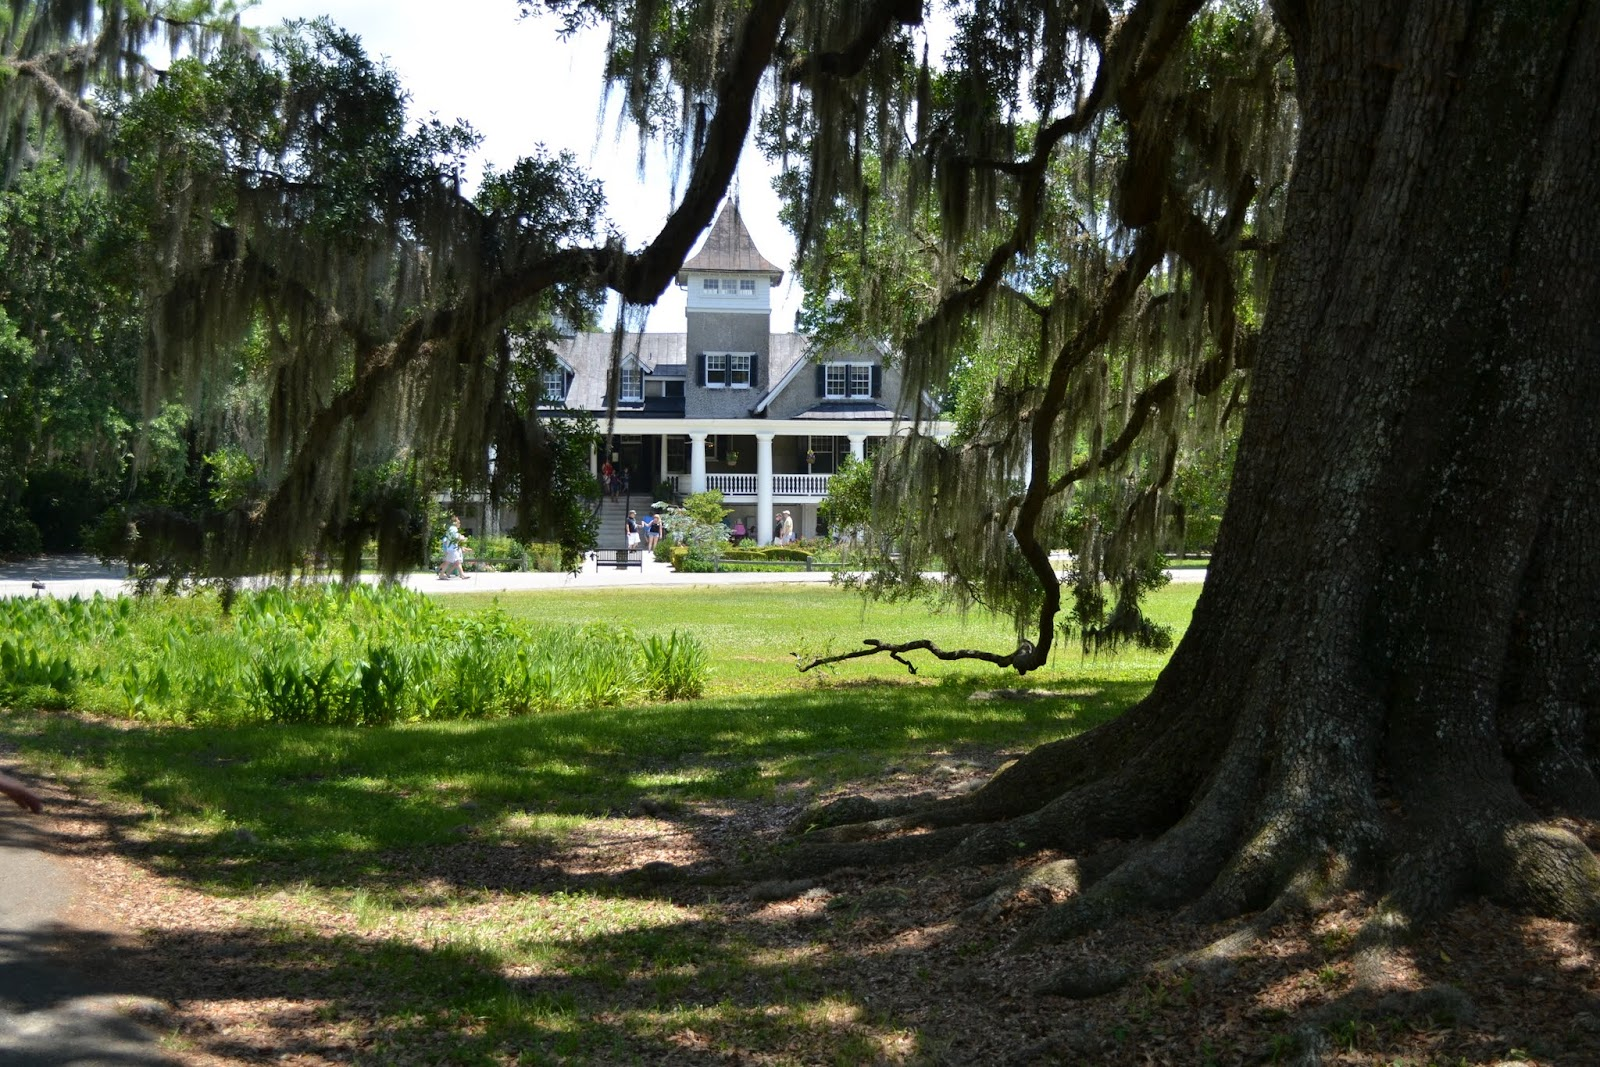 Плантация Магнолия, Чарльстон, Южная Каролина (Magnolia Plantation and Gardens, Charleston, SC)